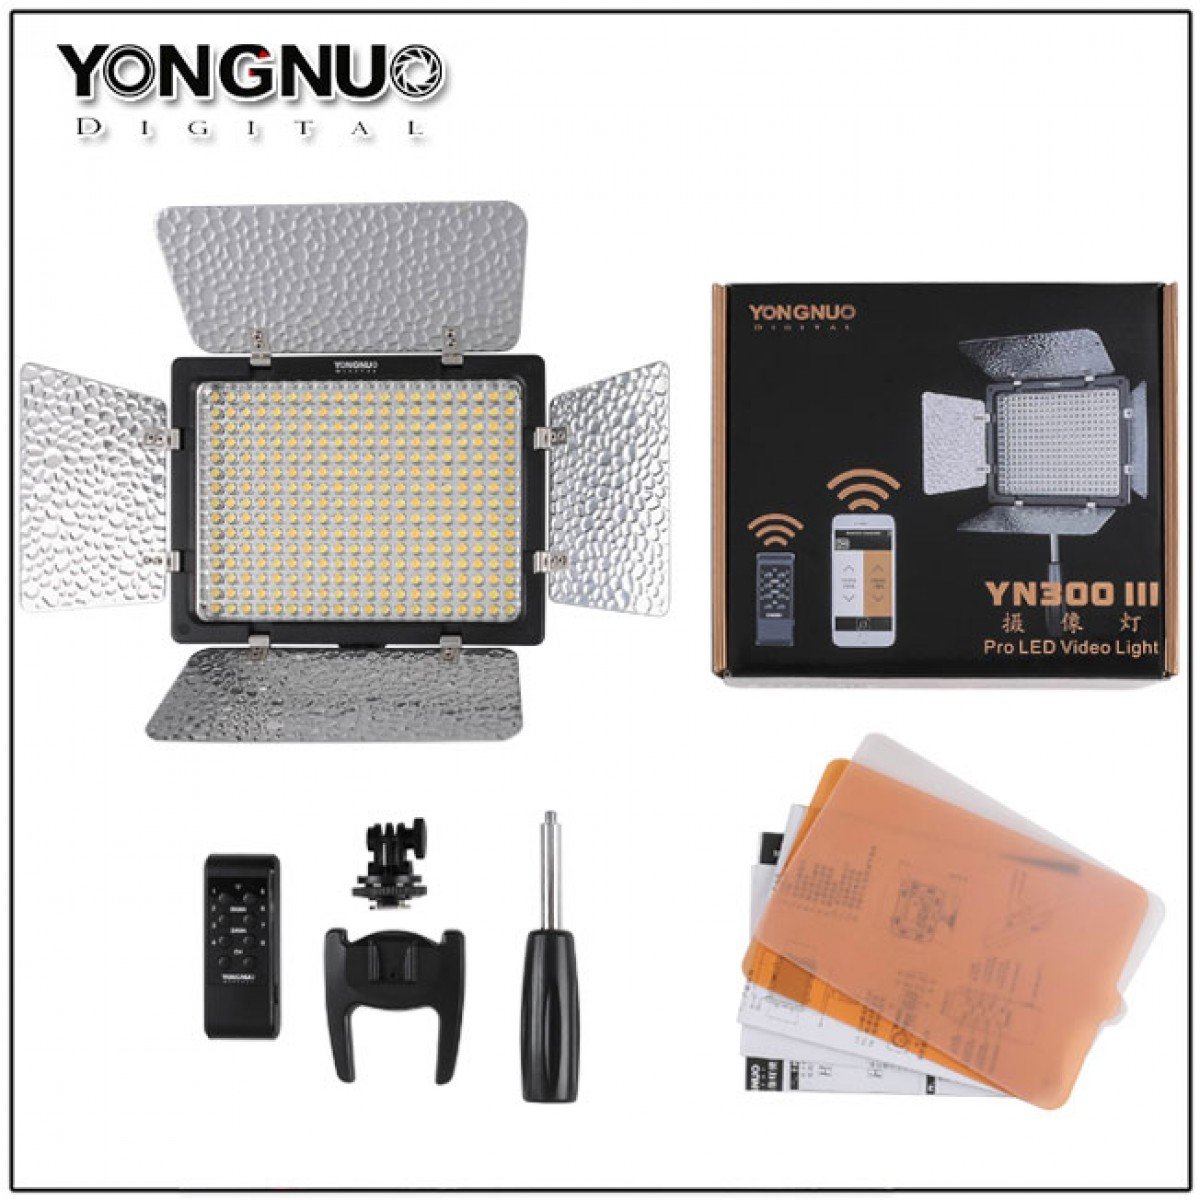 Yongnuo YN-300 II led light